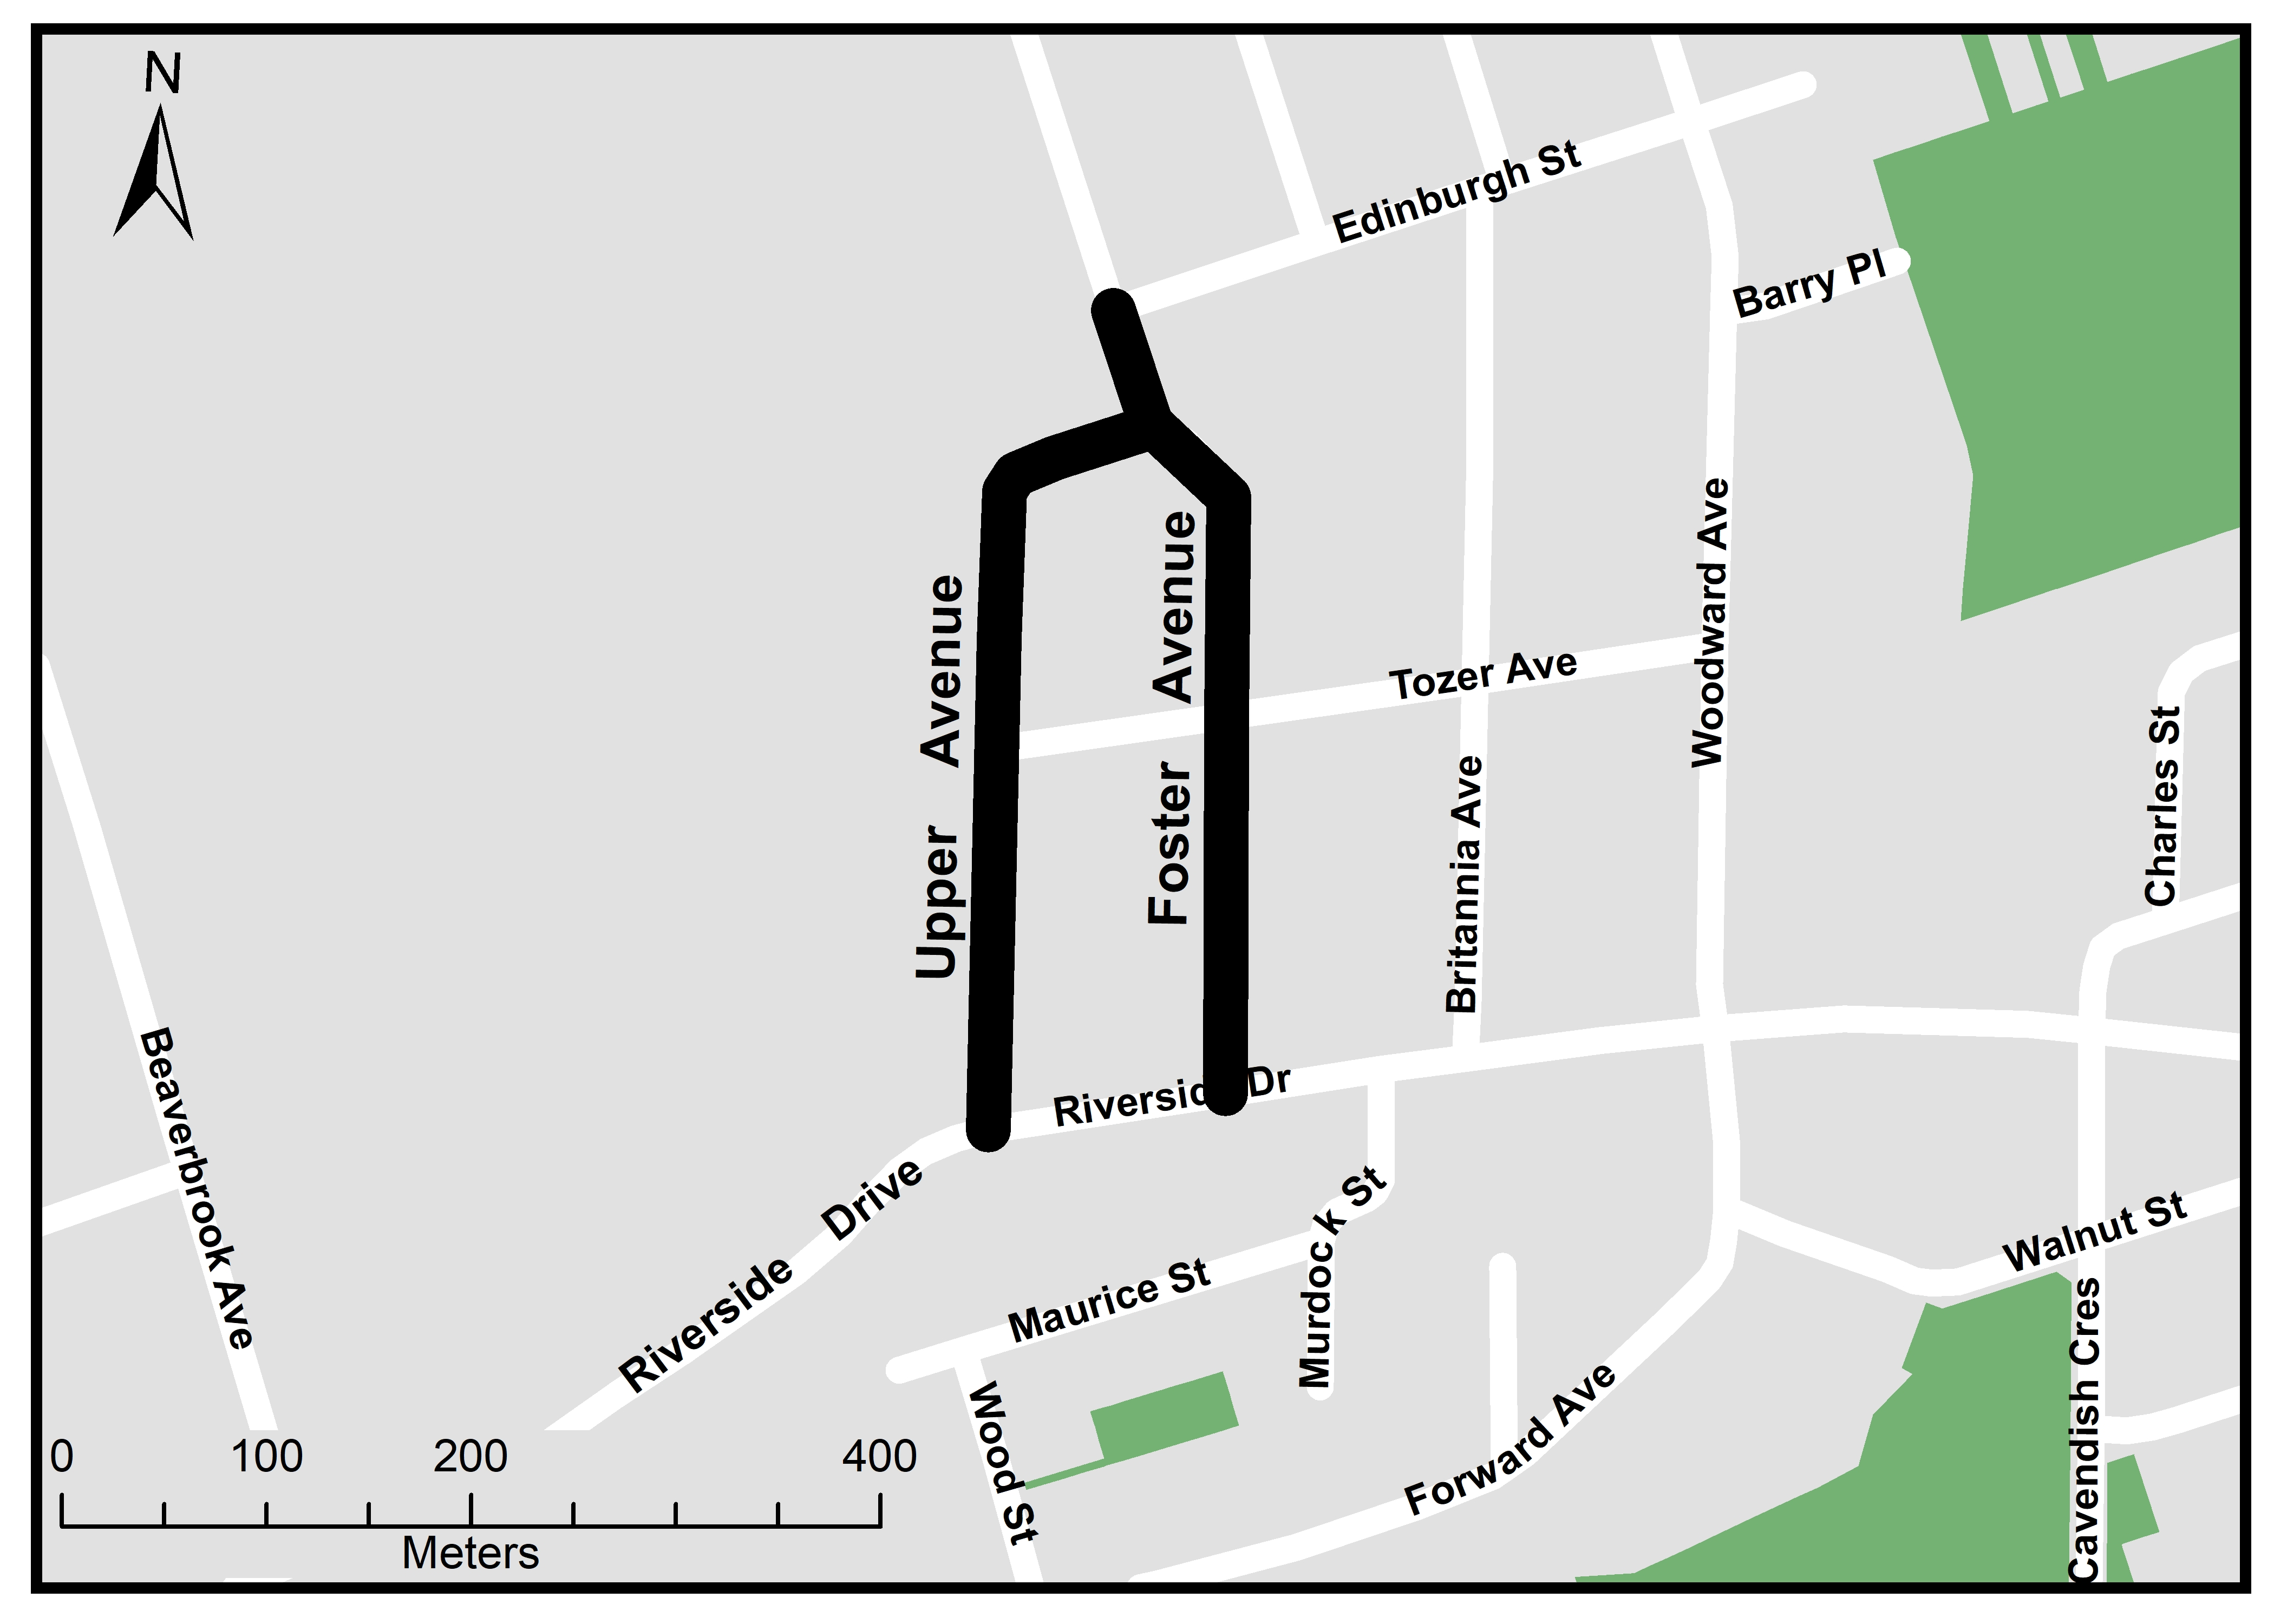 The City of London will reconstruct Foster Avenue, from Edinburgh Street to Riverside Drive; and Upper Avenue, from Foster Avenue to Riverside Drive. For more information, please contact Jeff Conrad at jconrad@london.ca or by calling 519-661-2489 x 0016